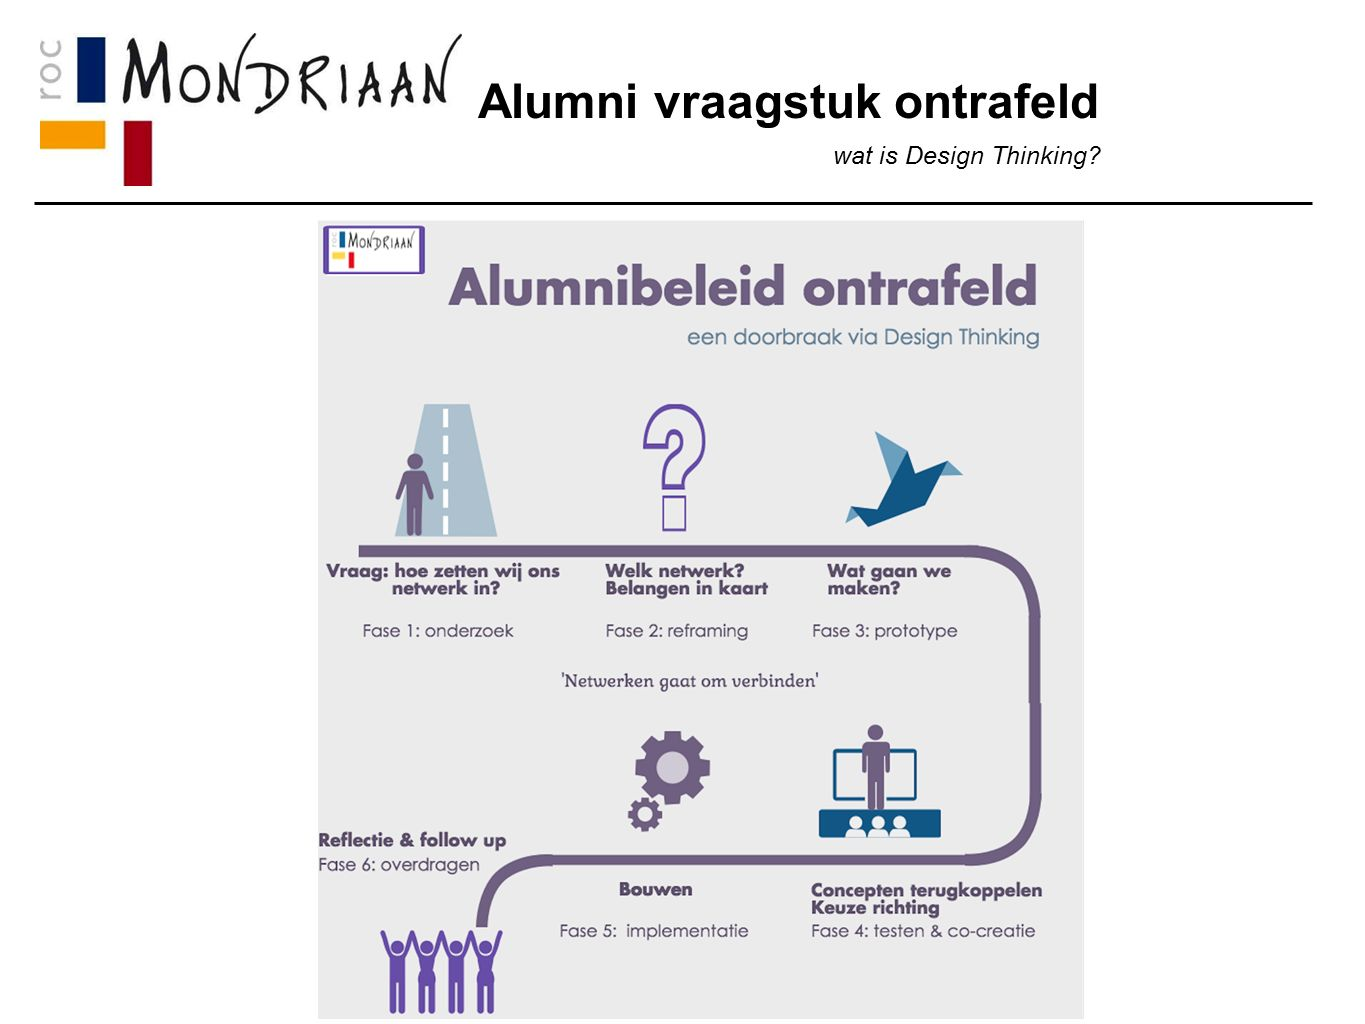 Alumni vraagstuk ontrafeld wat is Design Thinking